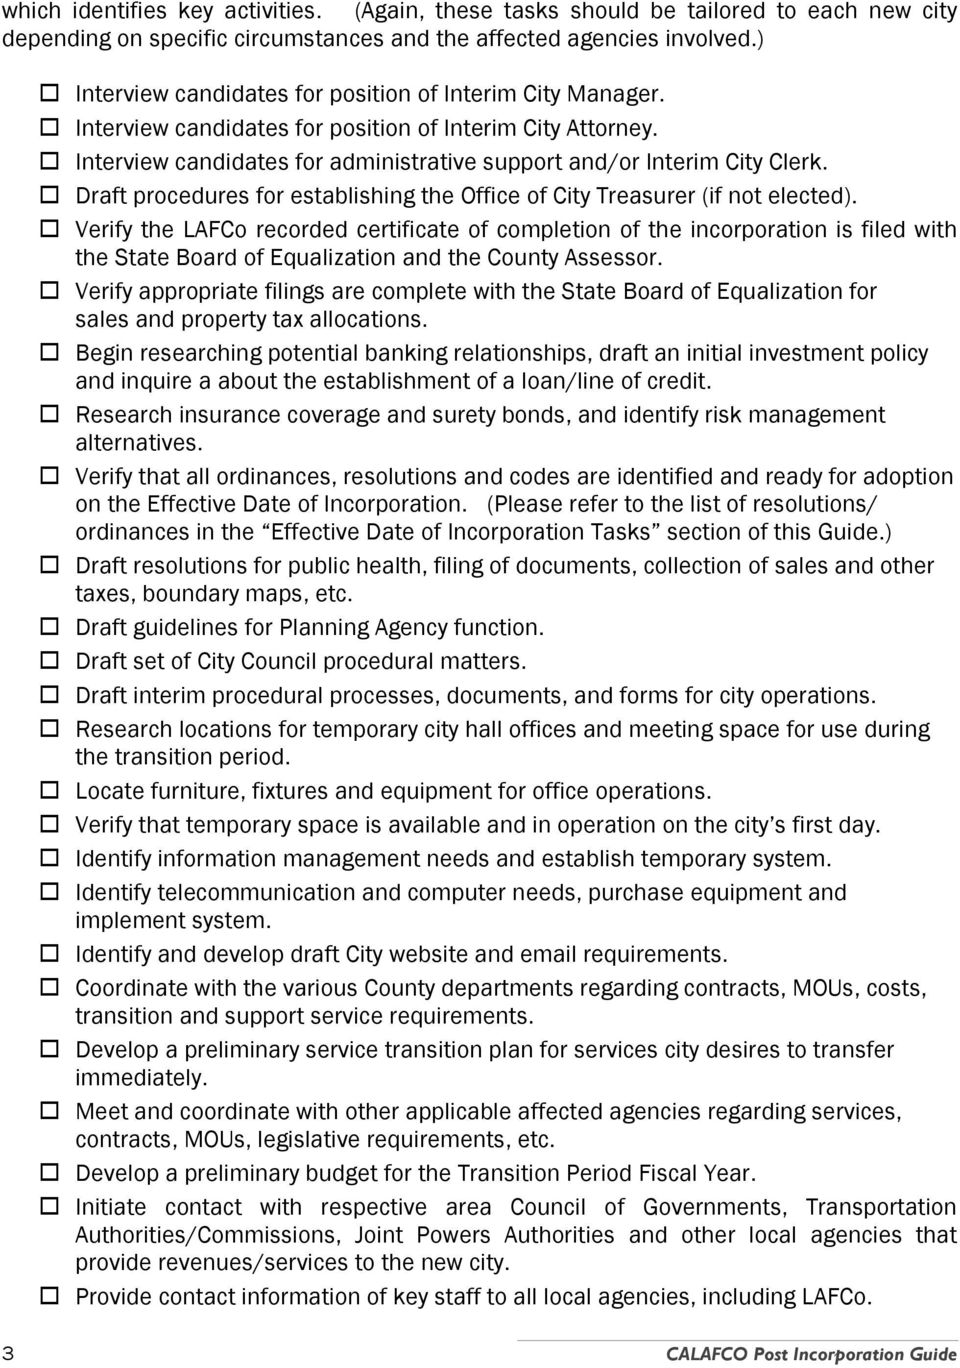 Draft procedures for establishing the Office of City Treasurer (if not elected).